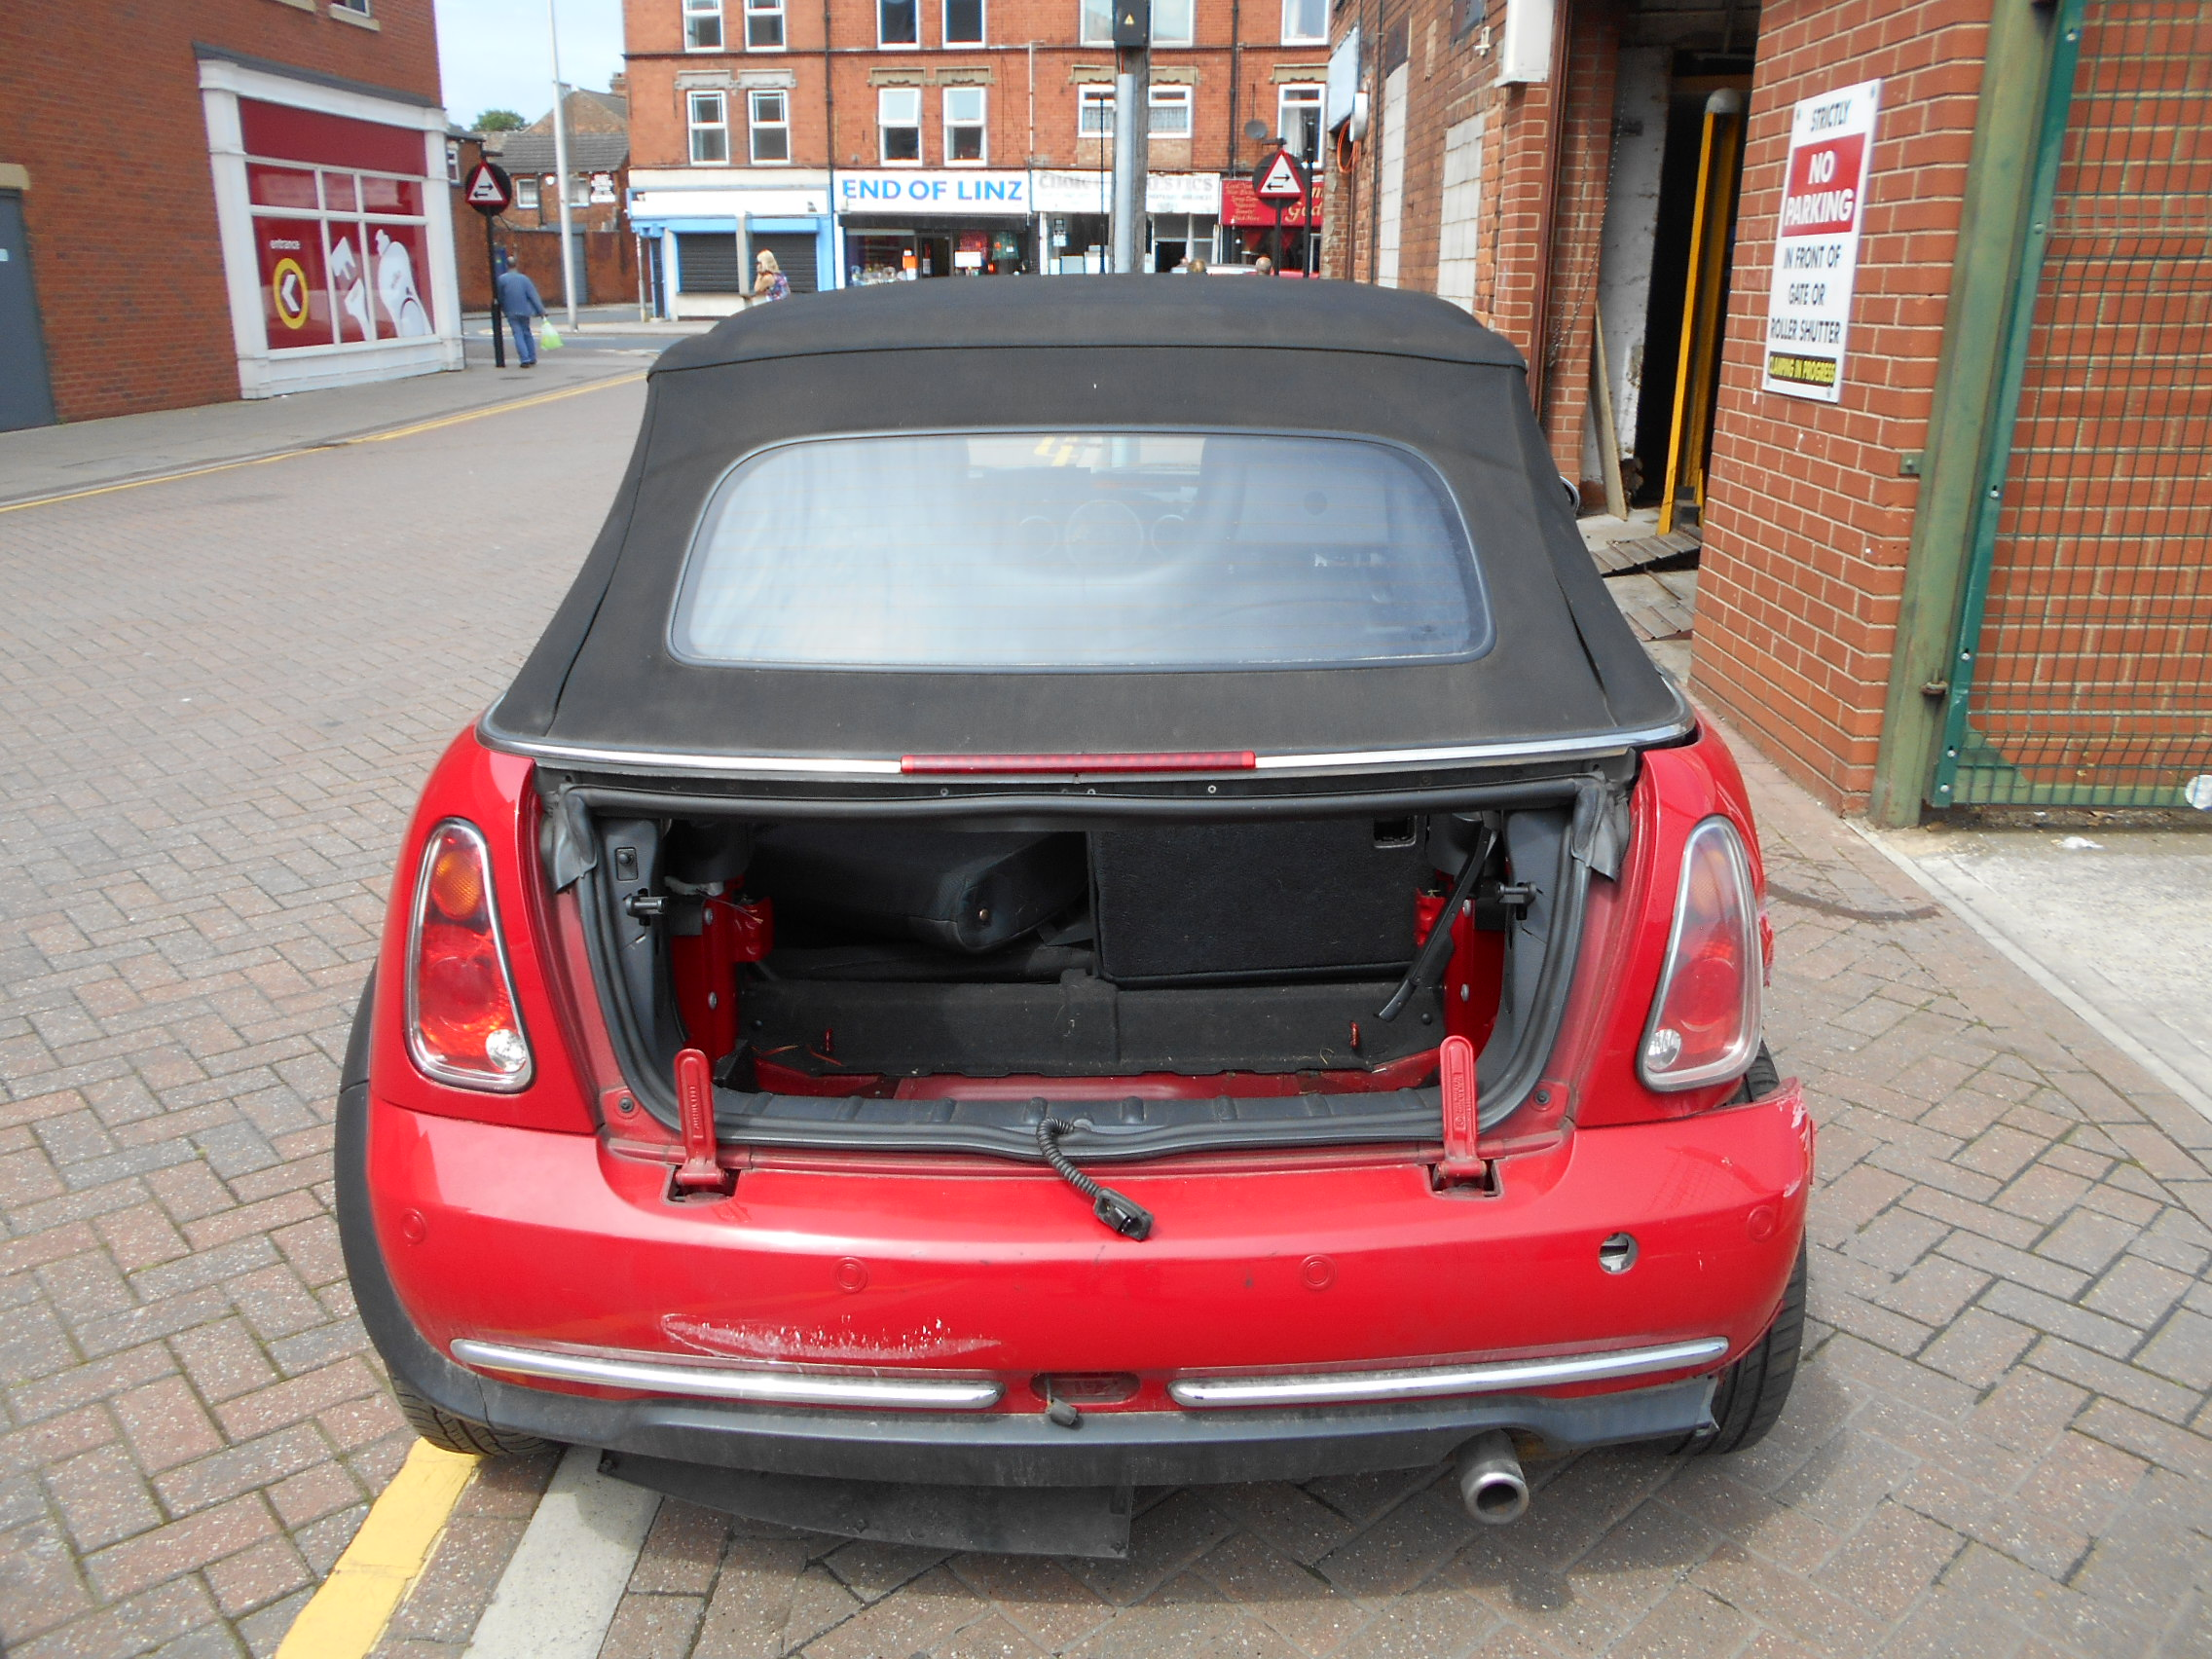 04 Chilli Red 1.6 BMW Mini Convertible - 9